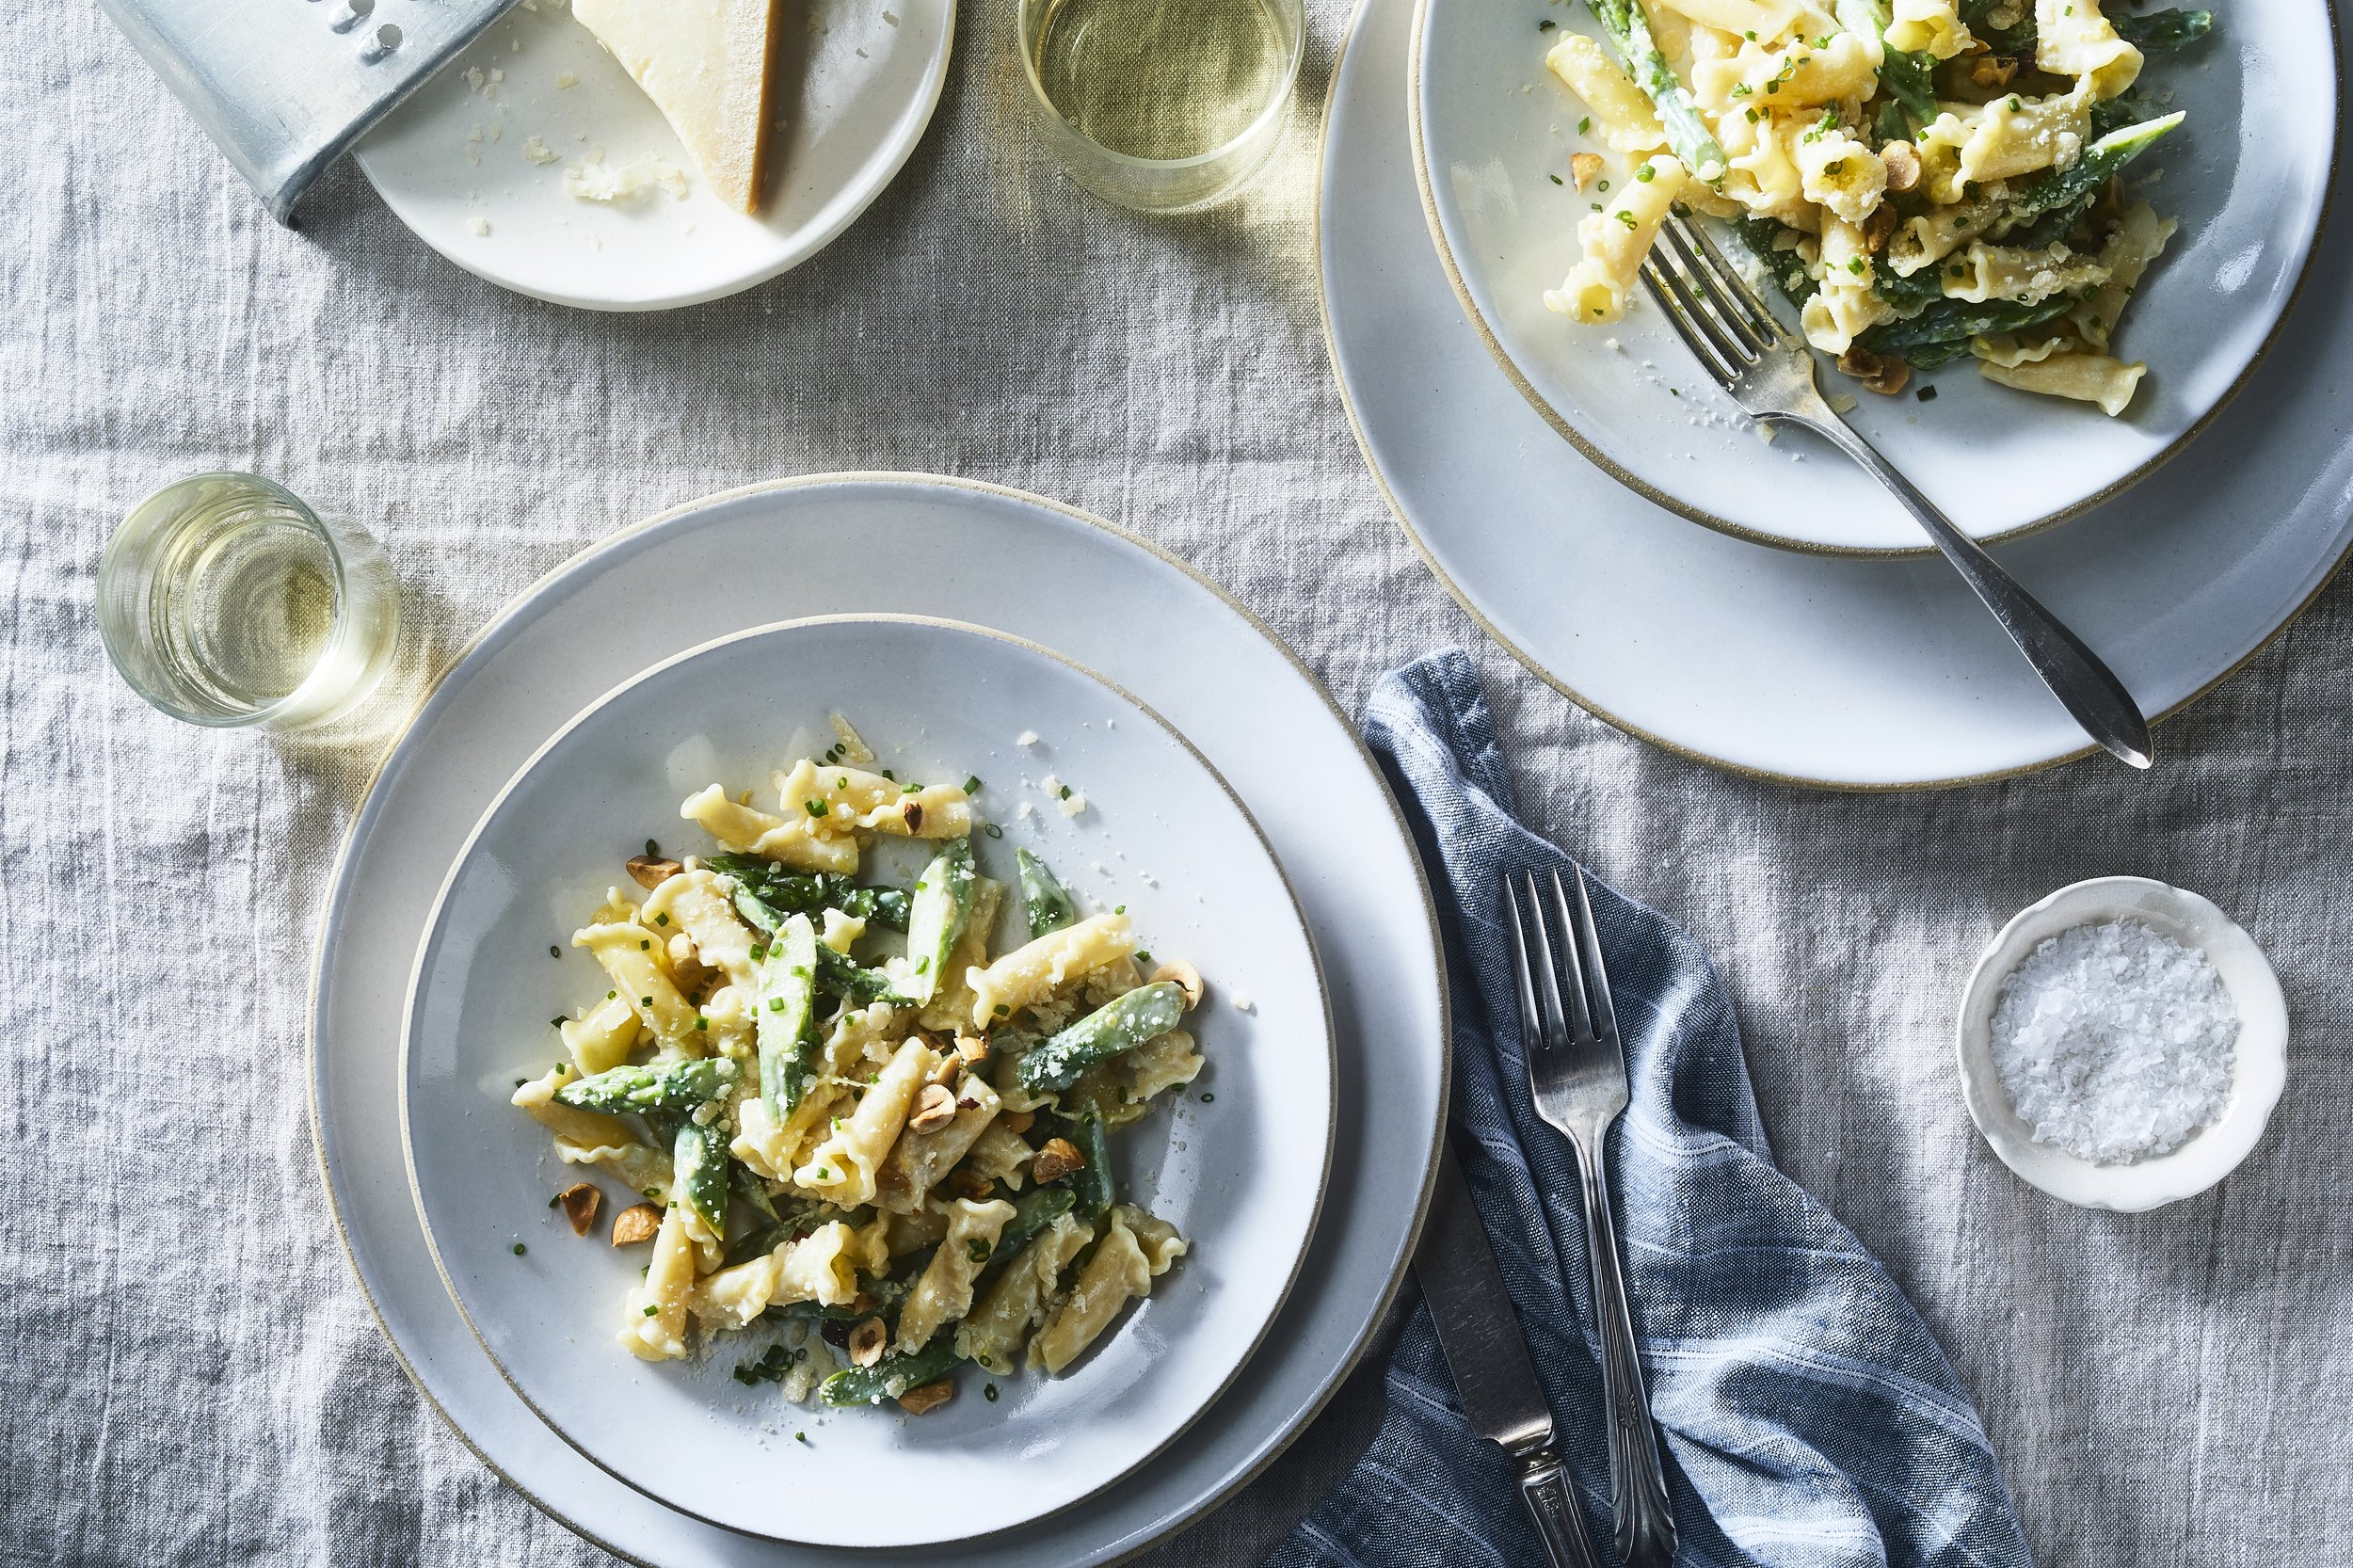 2018-0419_campanelle-with-asparagus-hazelnuts-and-mascarpone_3x2_julia-gartland_375.jpg